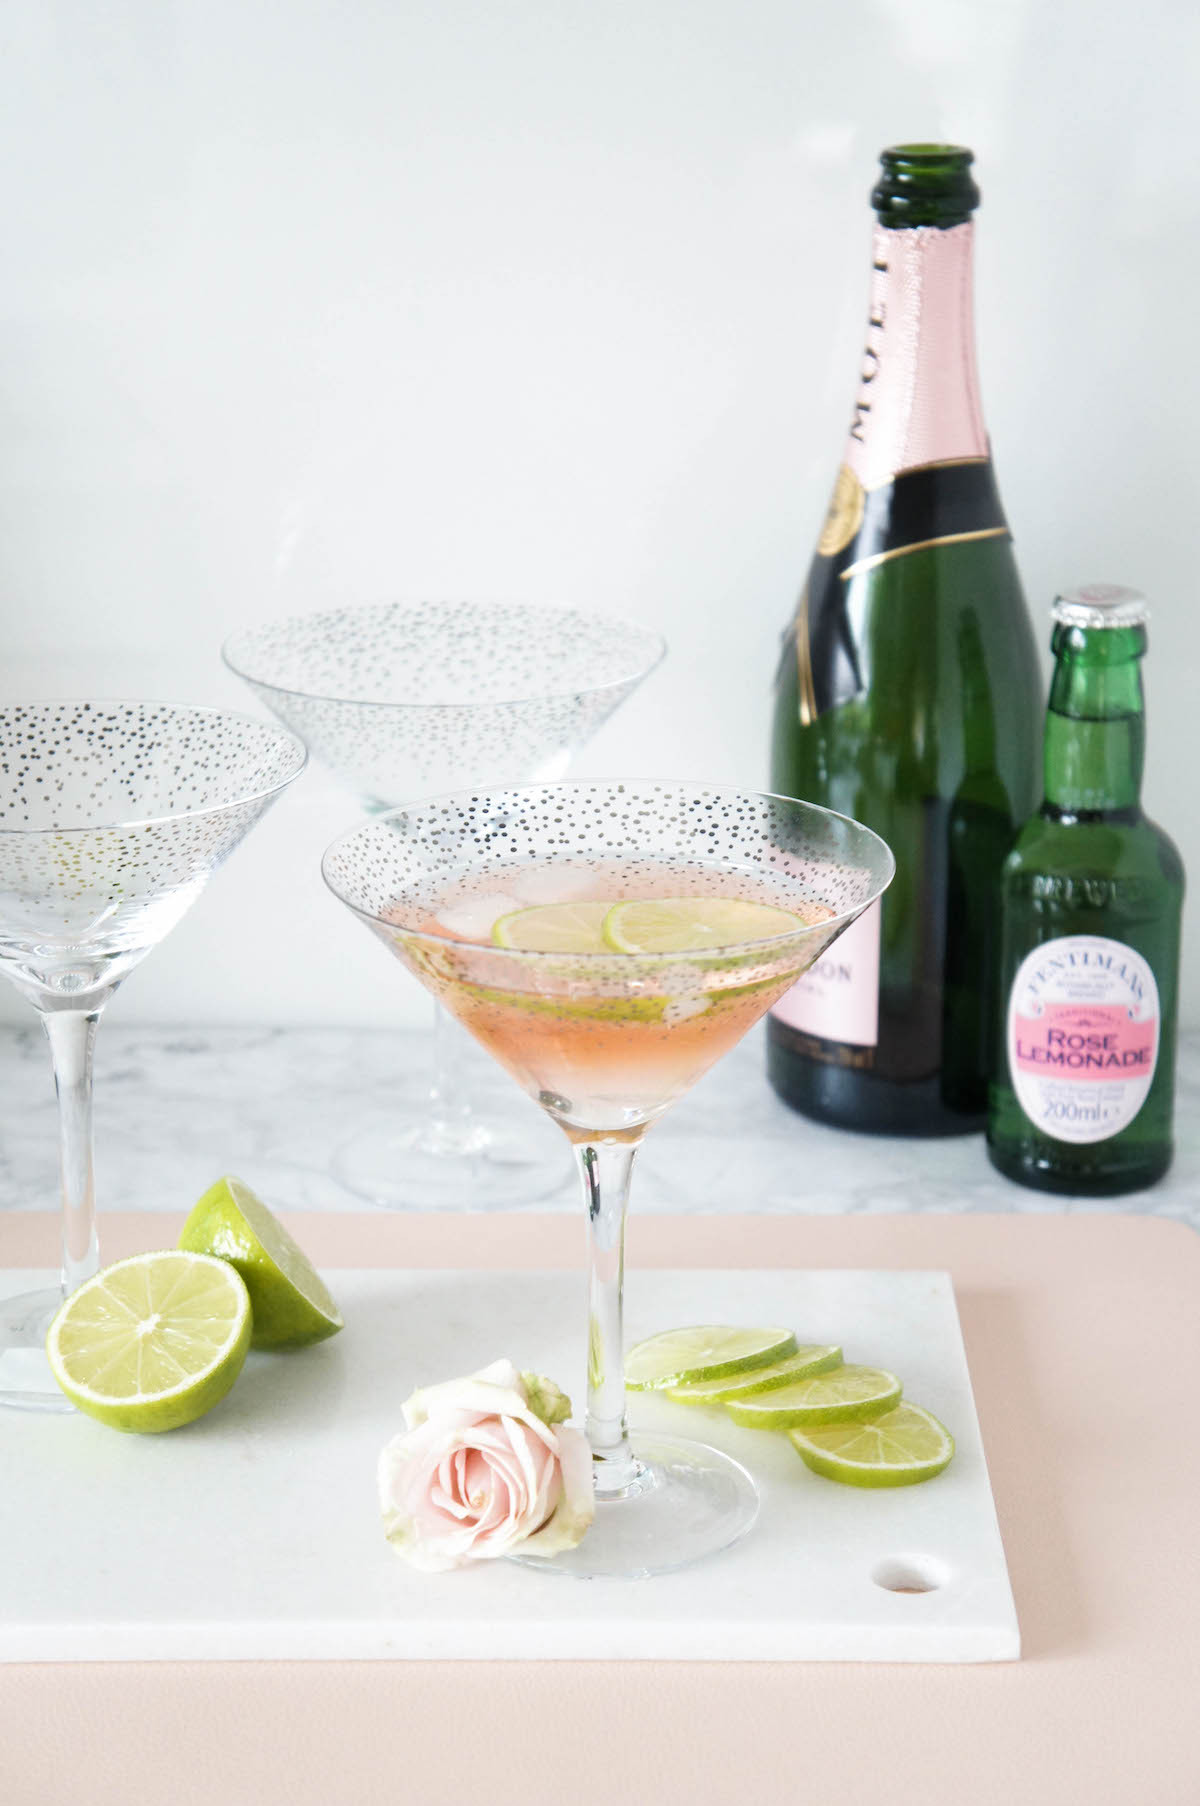 Cocktail_Longdrink_Fentimans_Rose_Lemonade_Rose_Champagner_Sekt_Madelsabend_Rezept_Sektglaser_Gold_rand